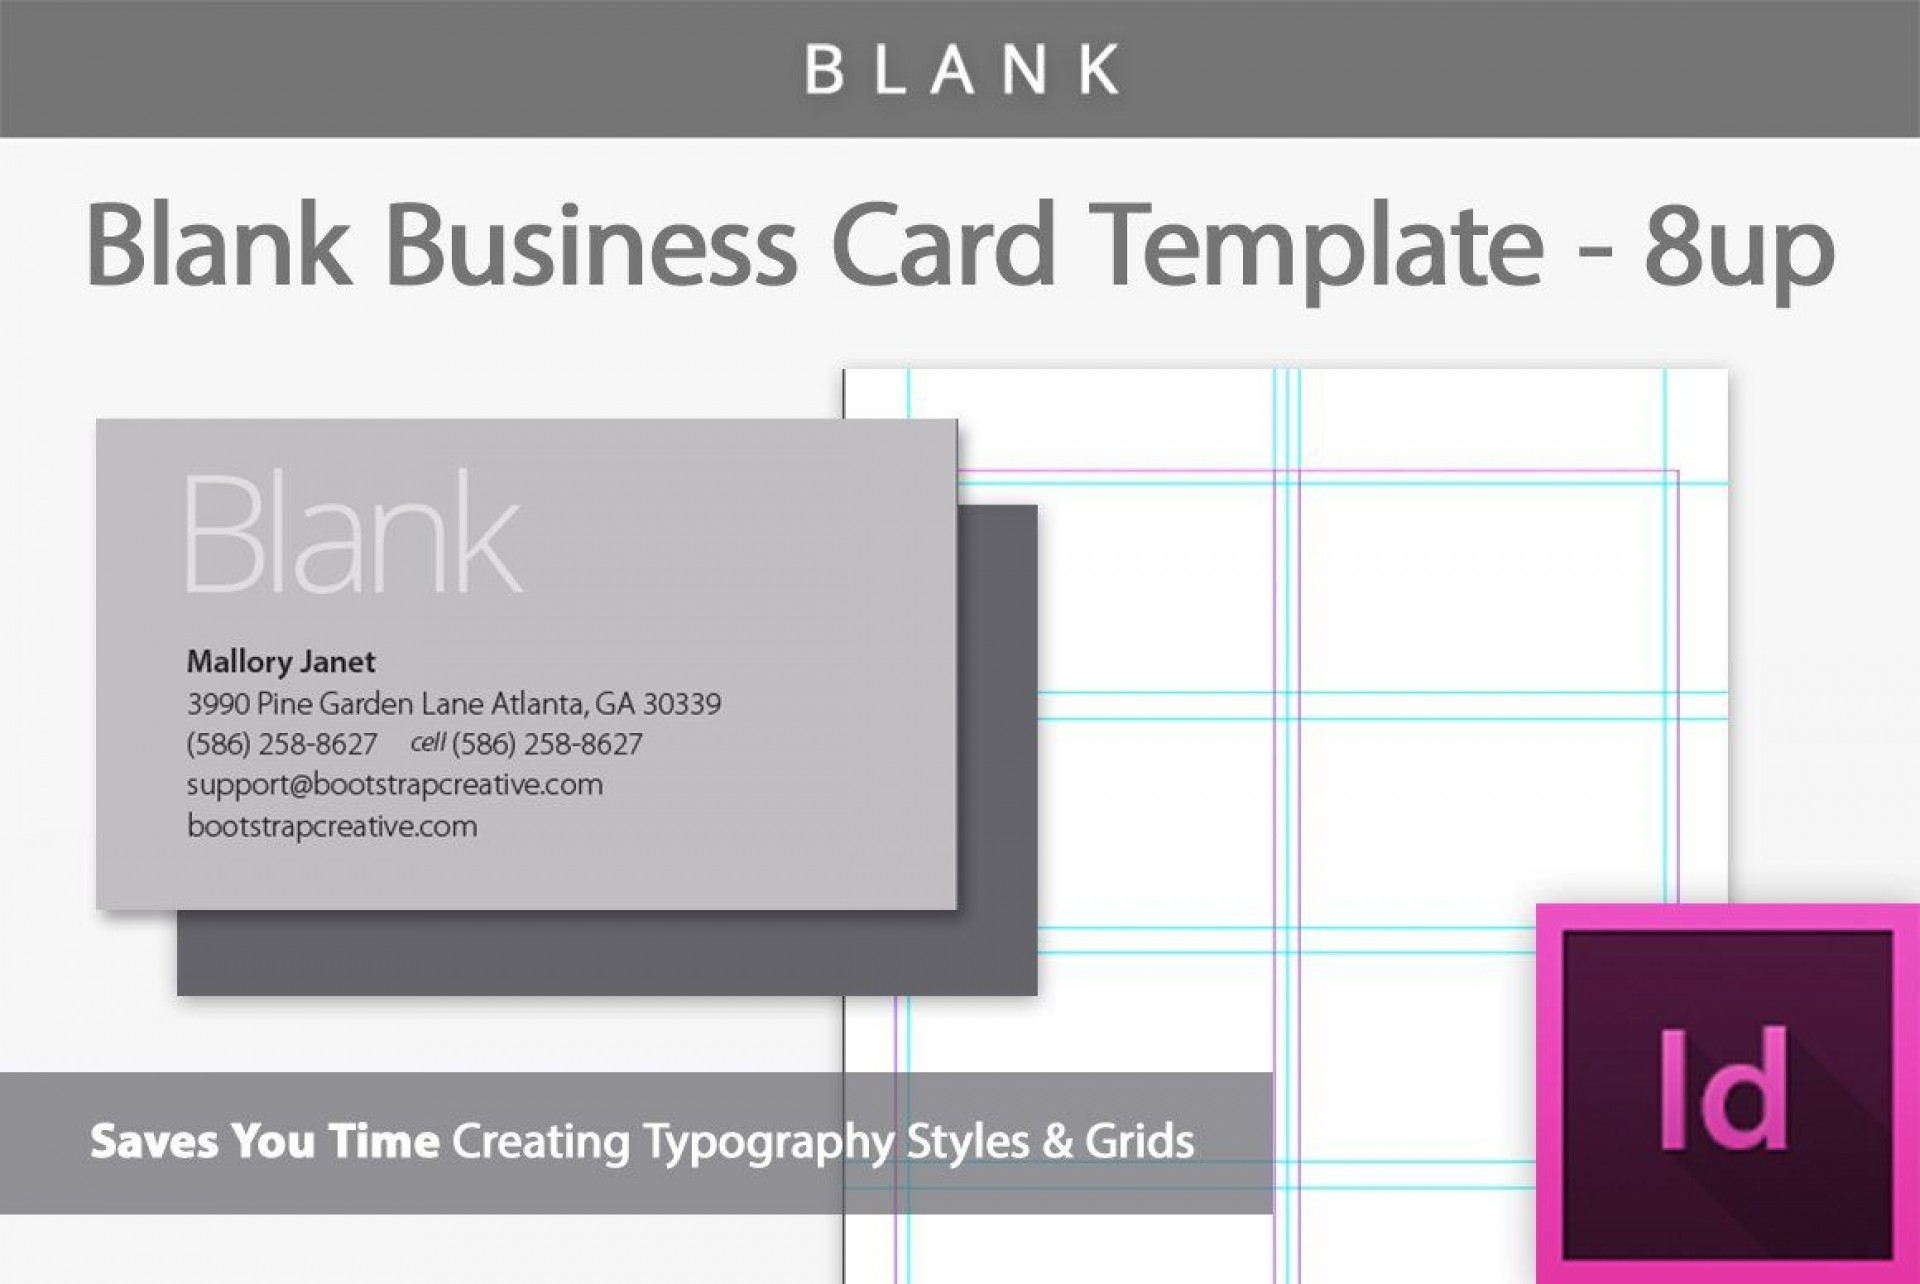 006 Exceptional Blank Busines Card Template Photoshop Photo  Free Download Psd1920